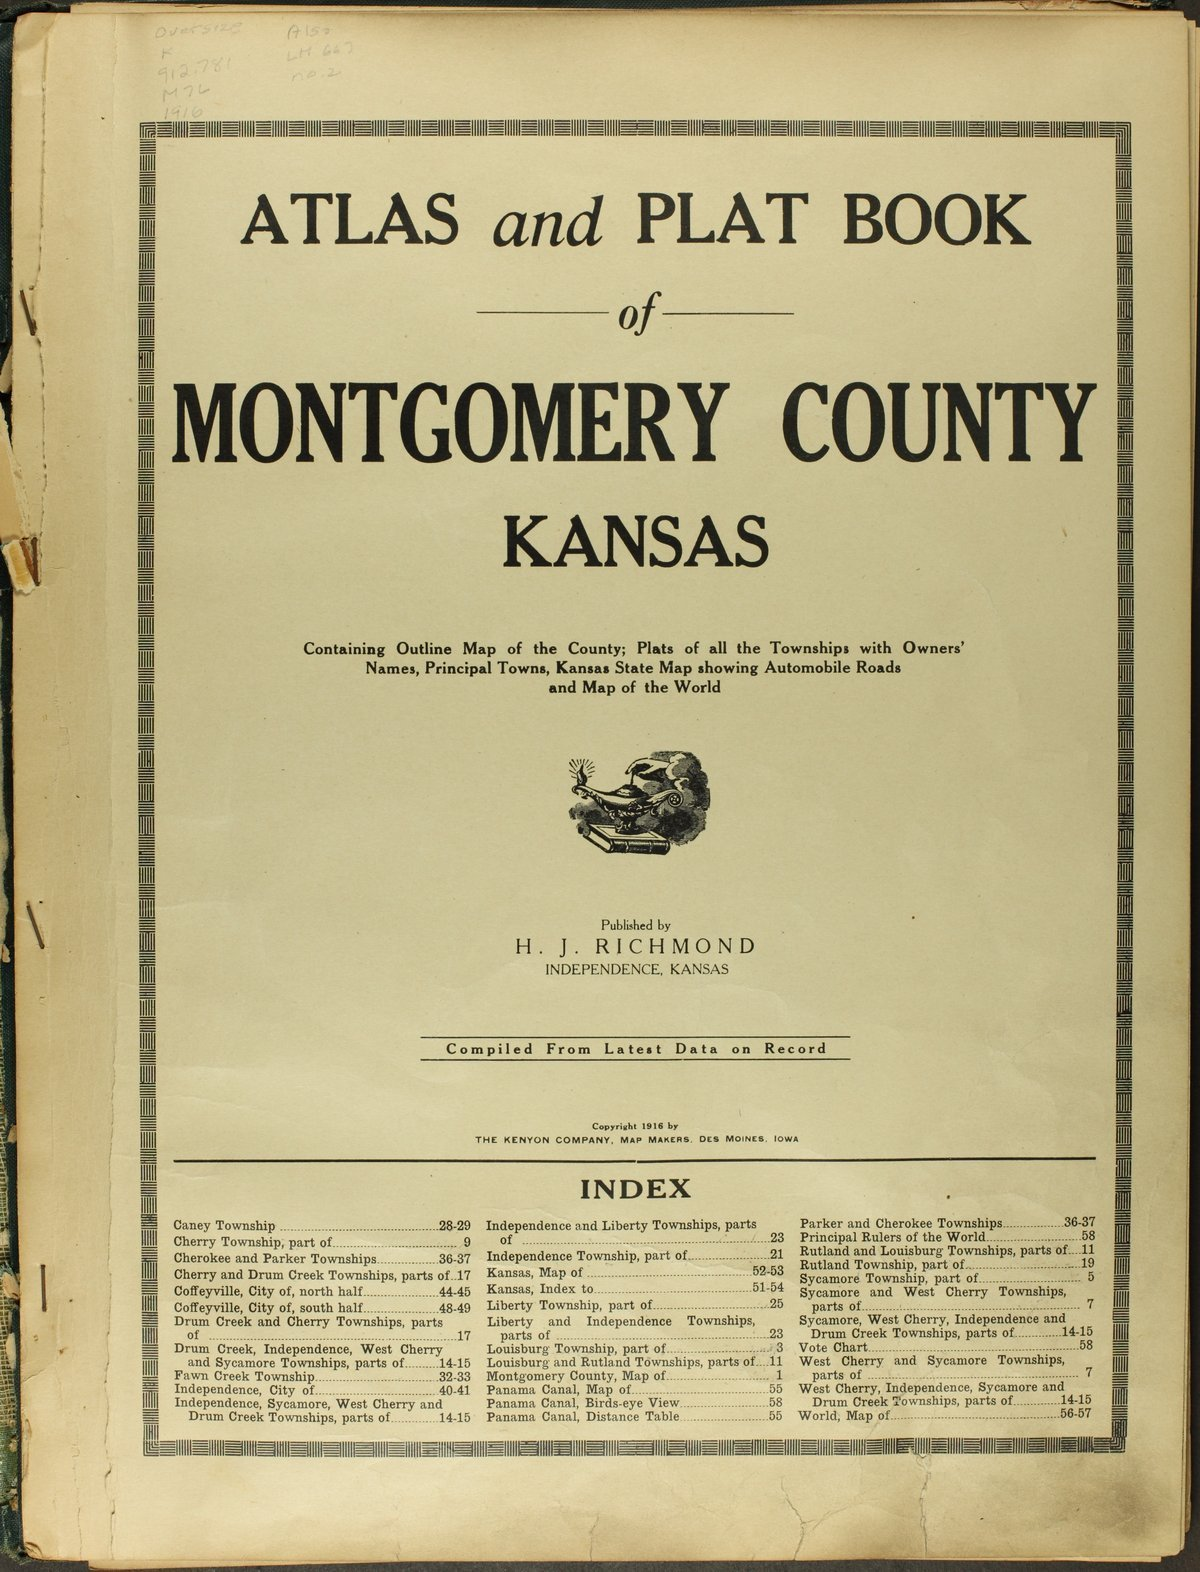 Atlas and plat book of Montgomery County, Kansas - Title Page